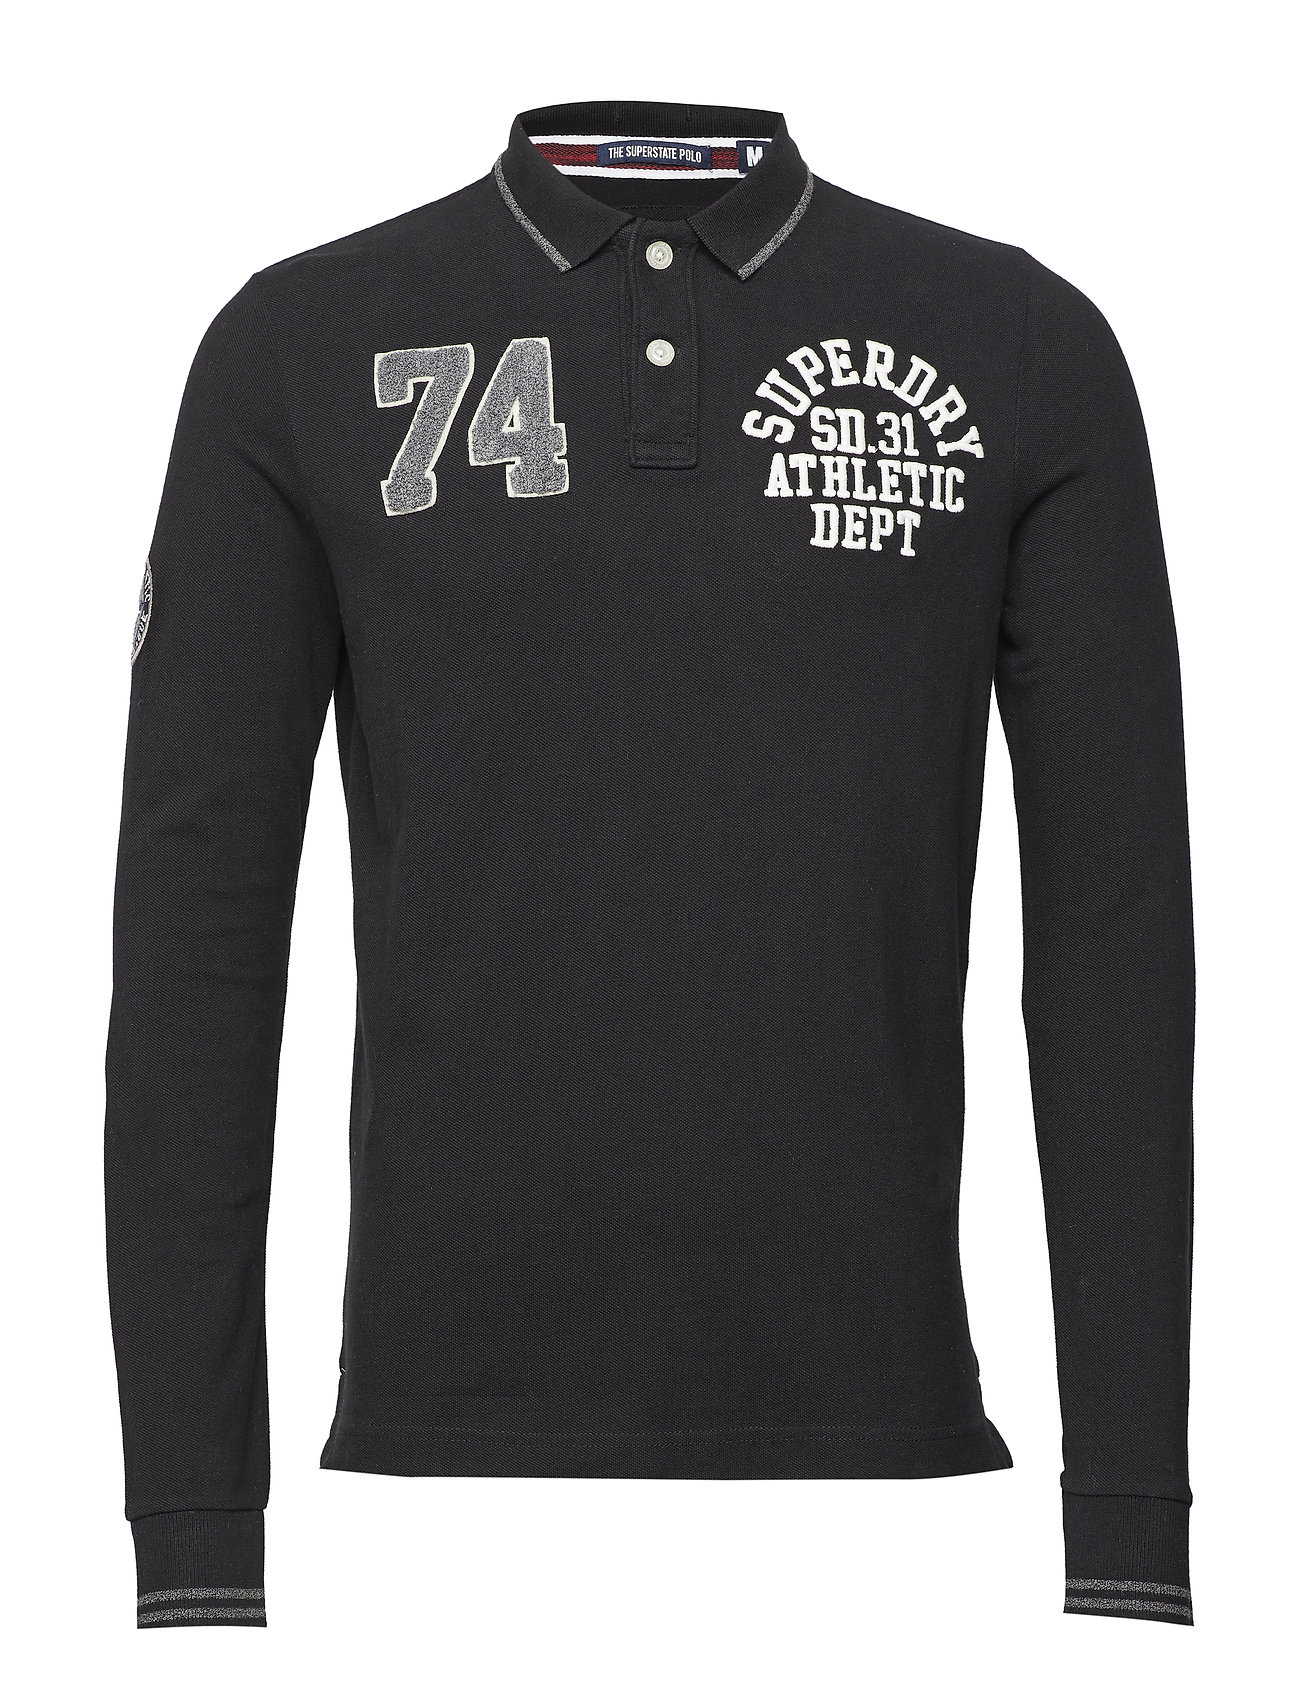 Superdry CLASSIC SUPERSTATE L/S POLO - BLACK